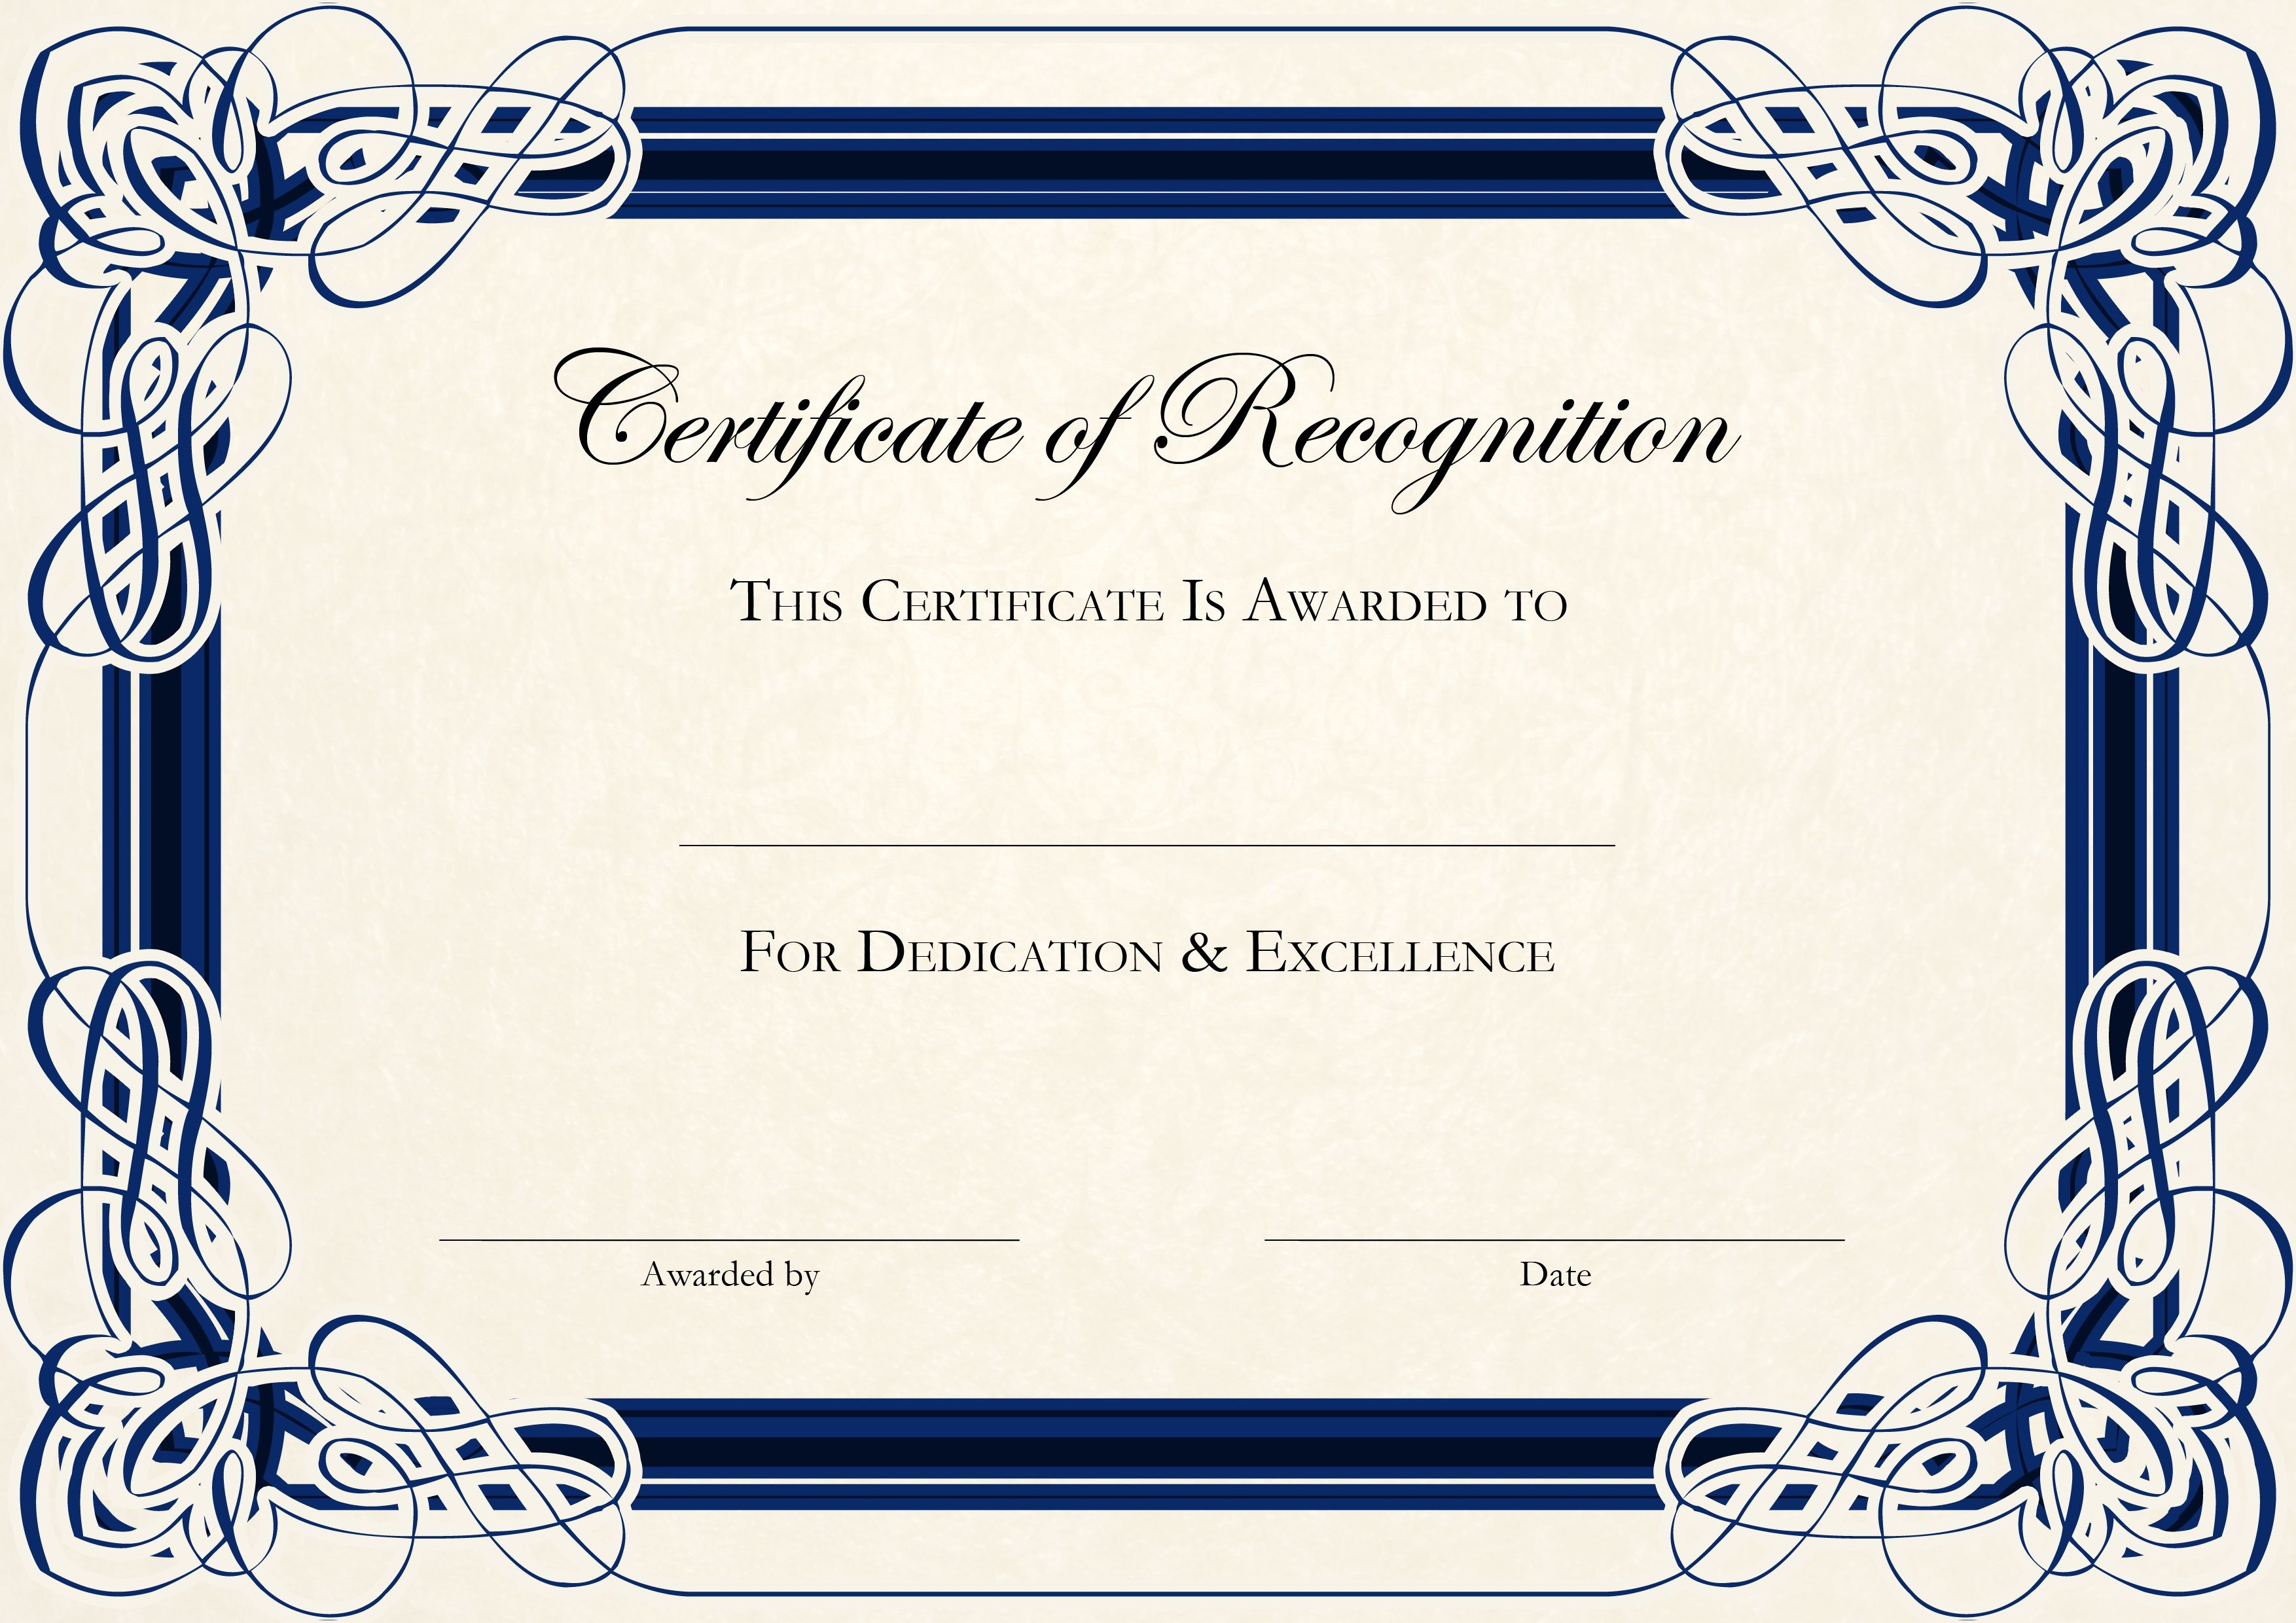 Sports Cetificate | Certificate Of Recognition A4 Thumbnail - Free Printable Certificate Templates